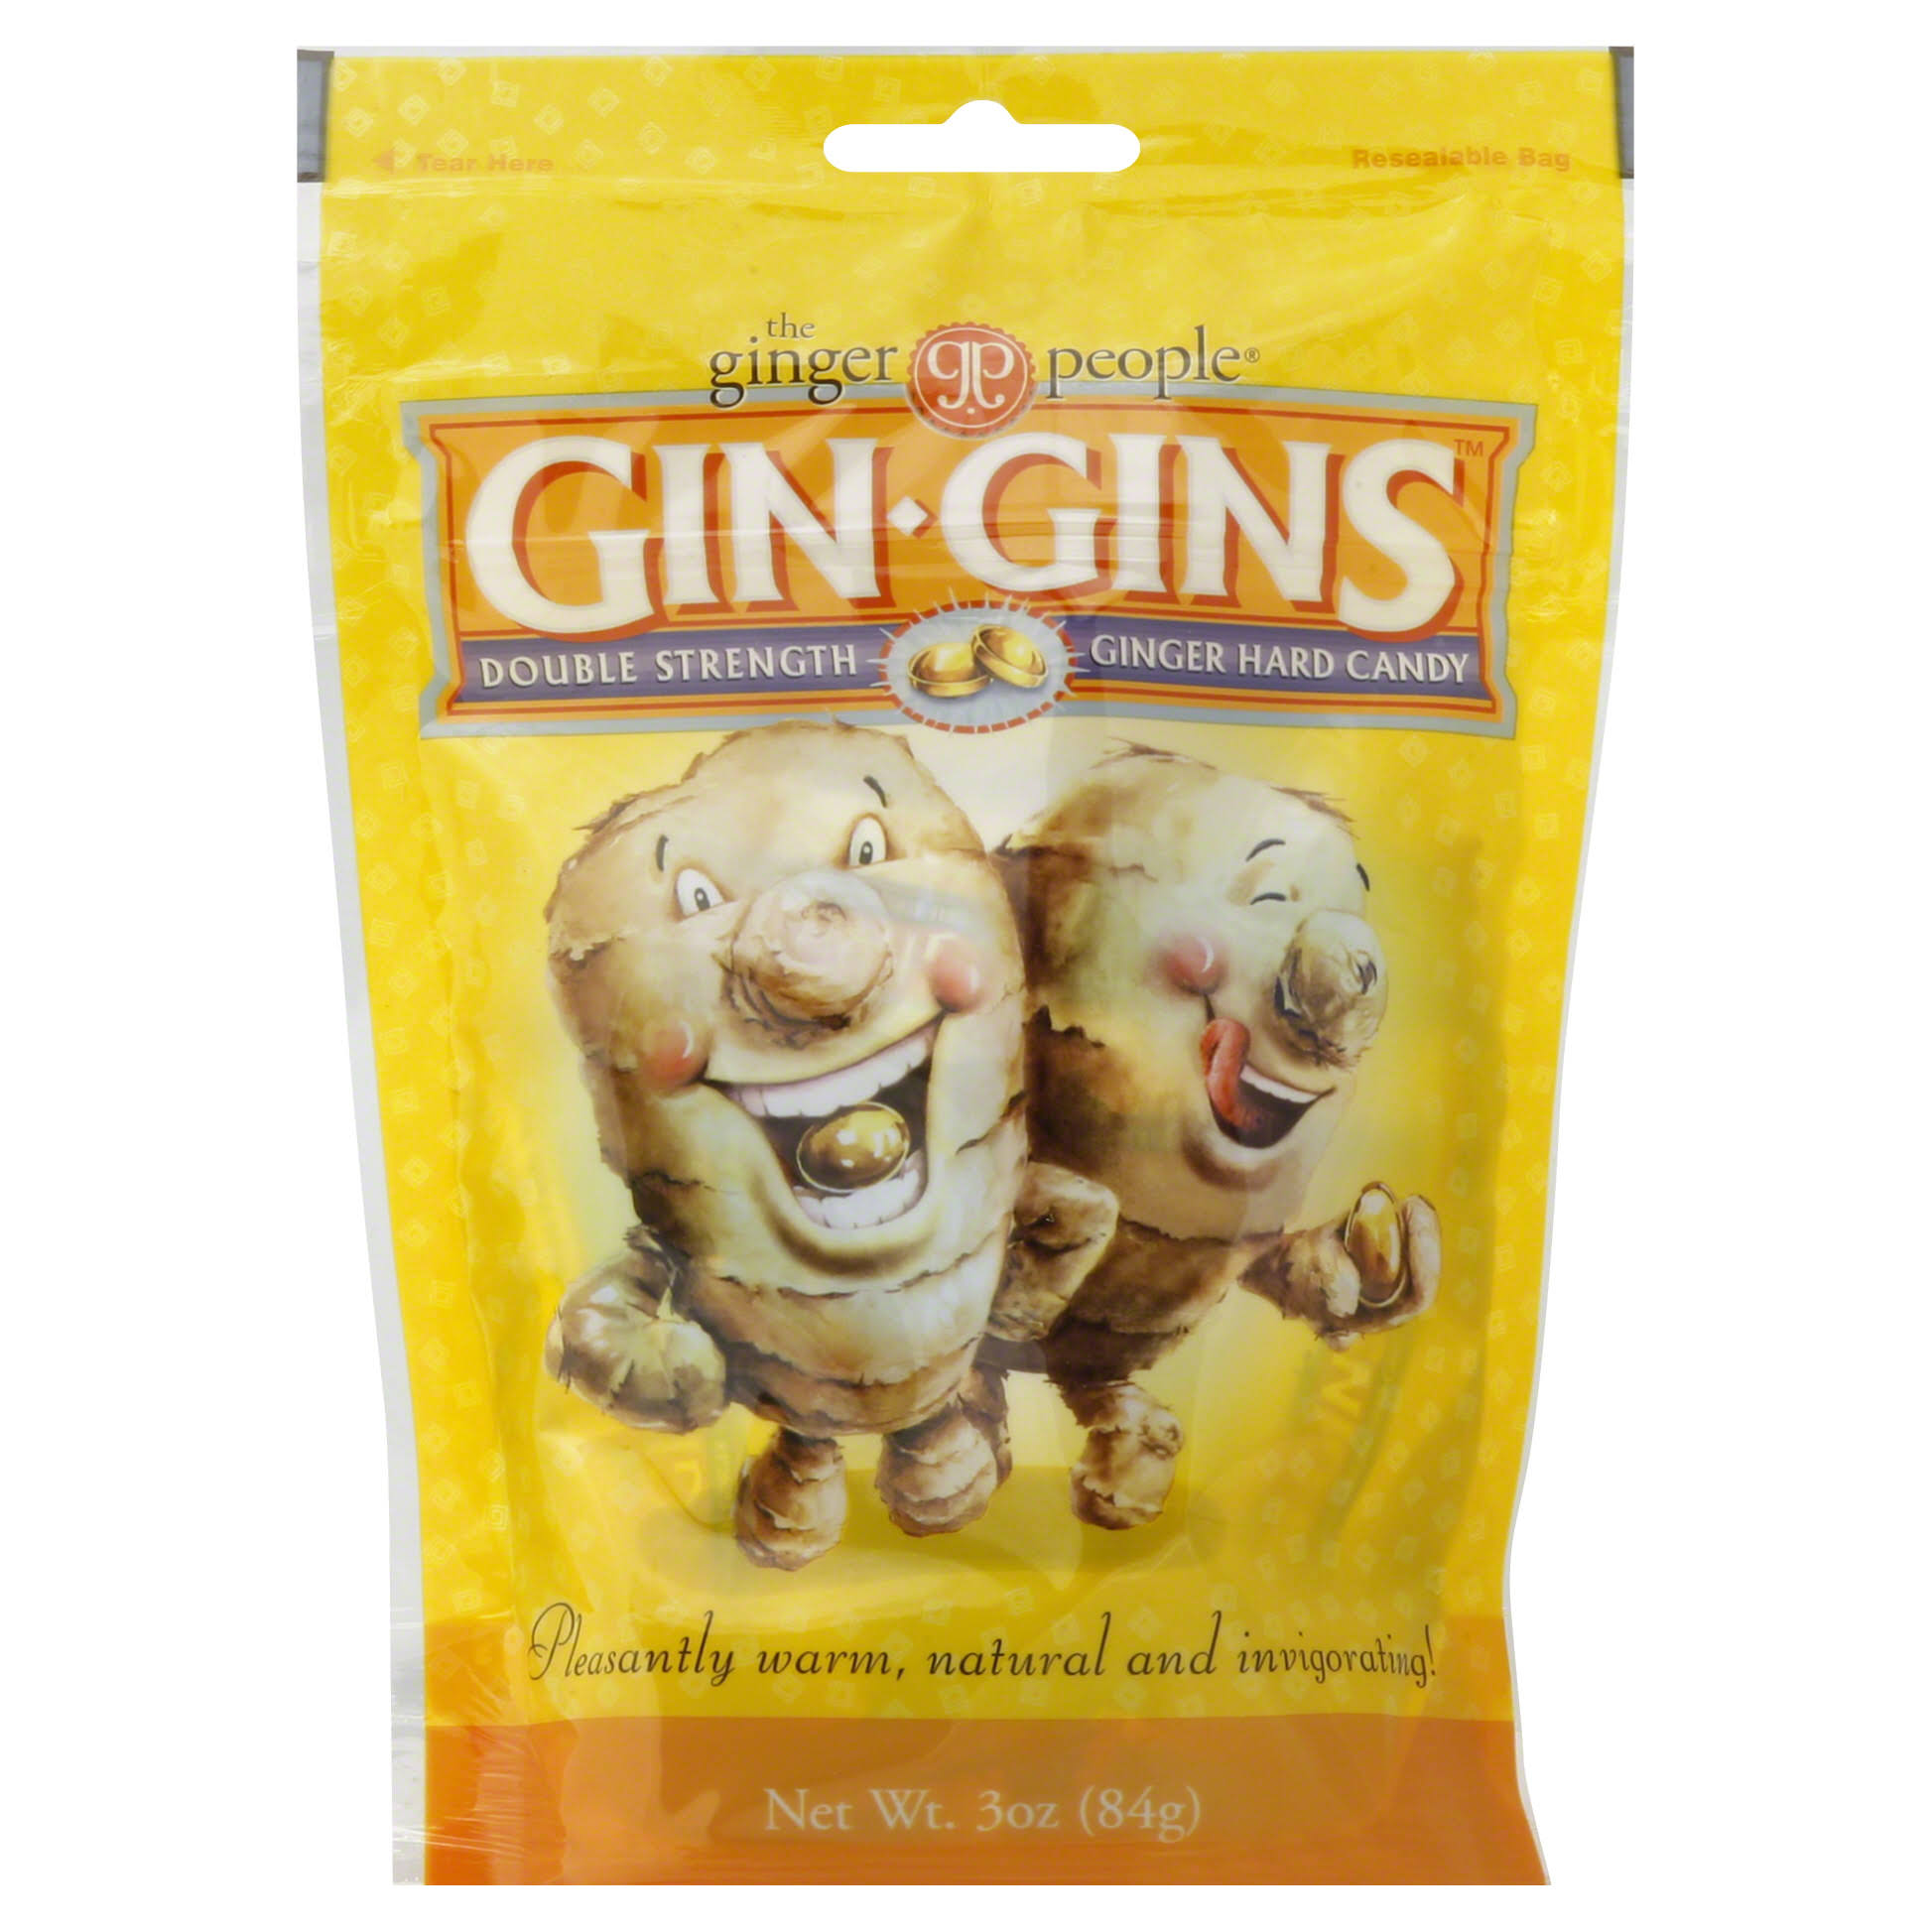 The Ginger People Gin Gins Ginger Hard Candy